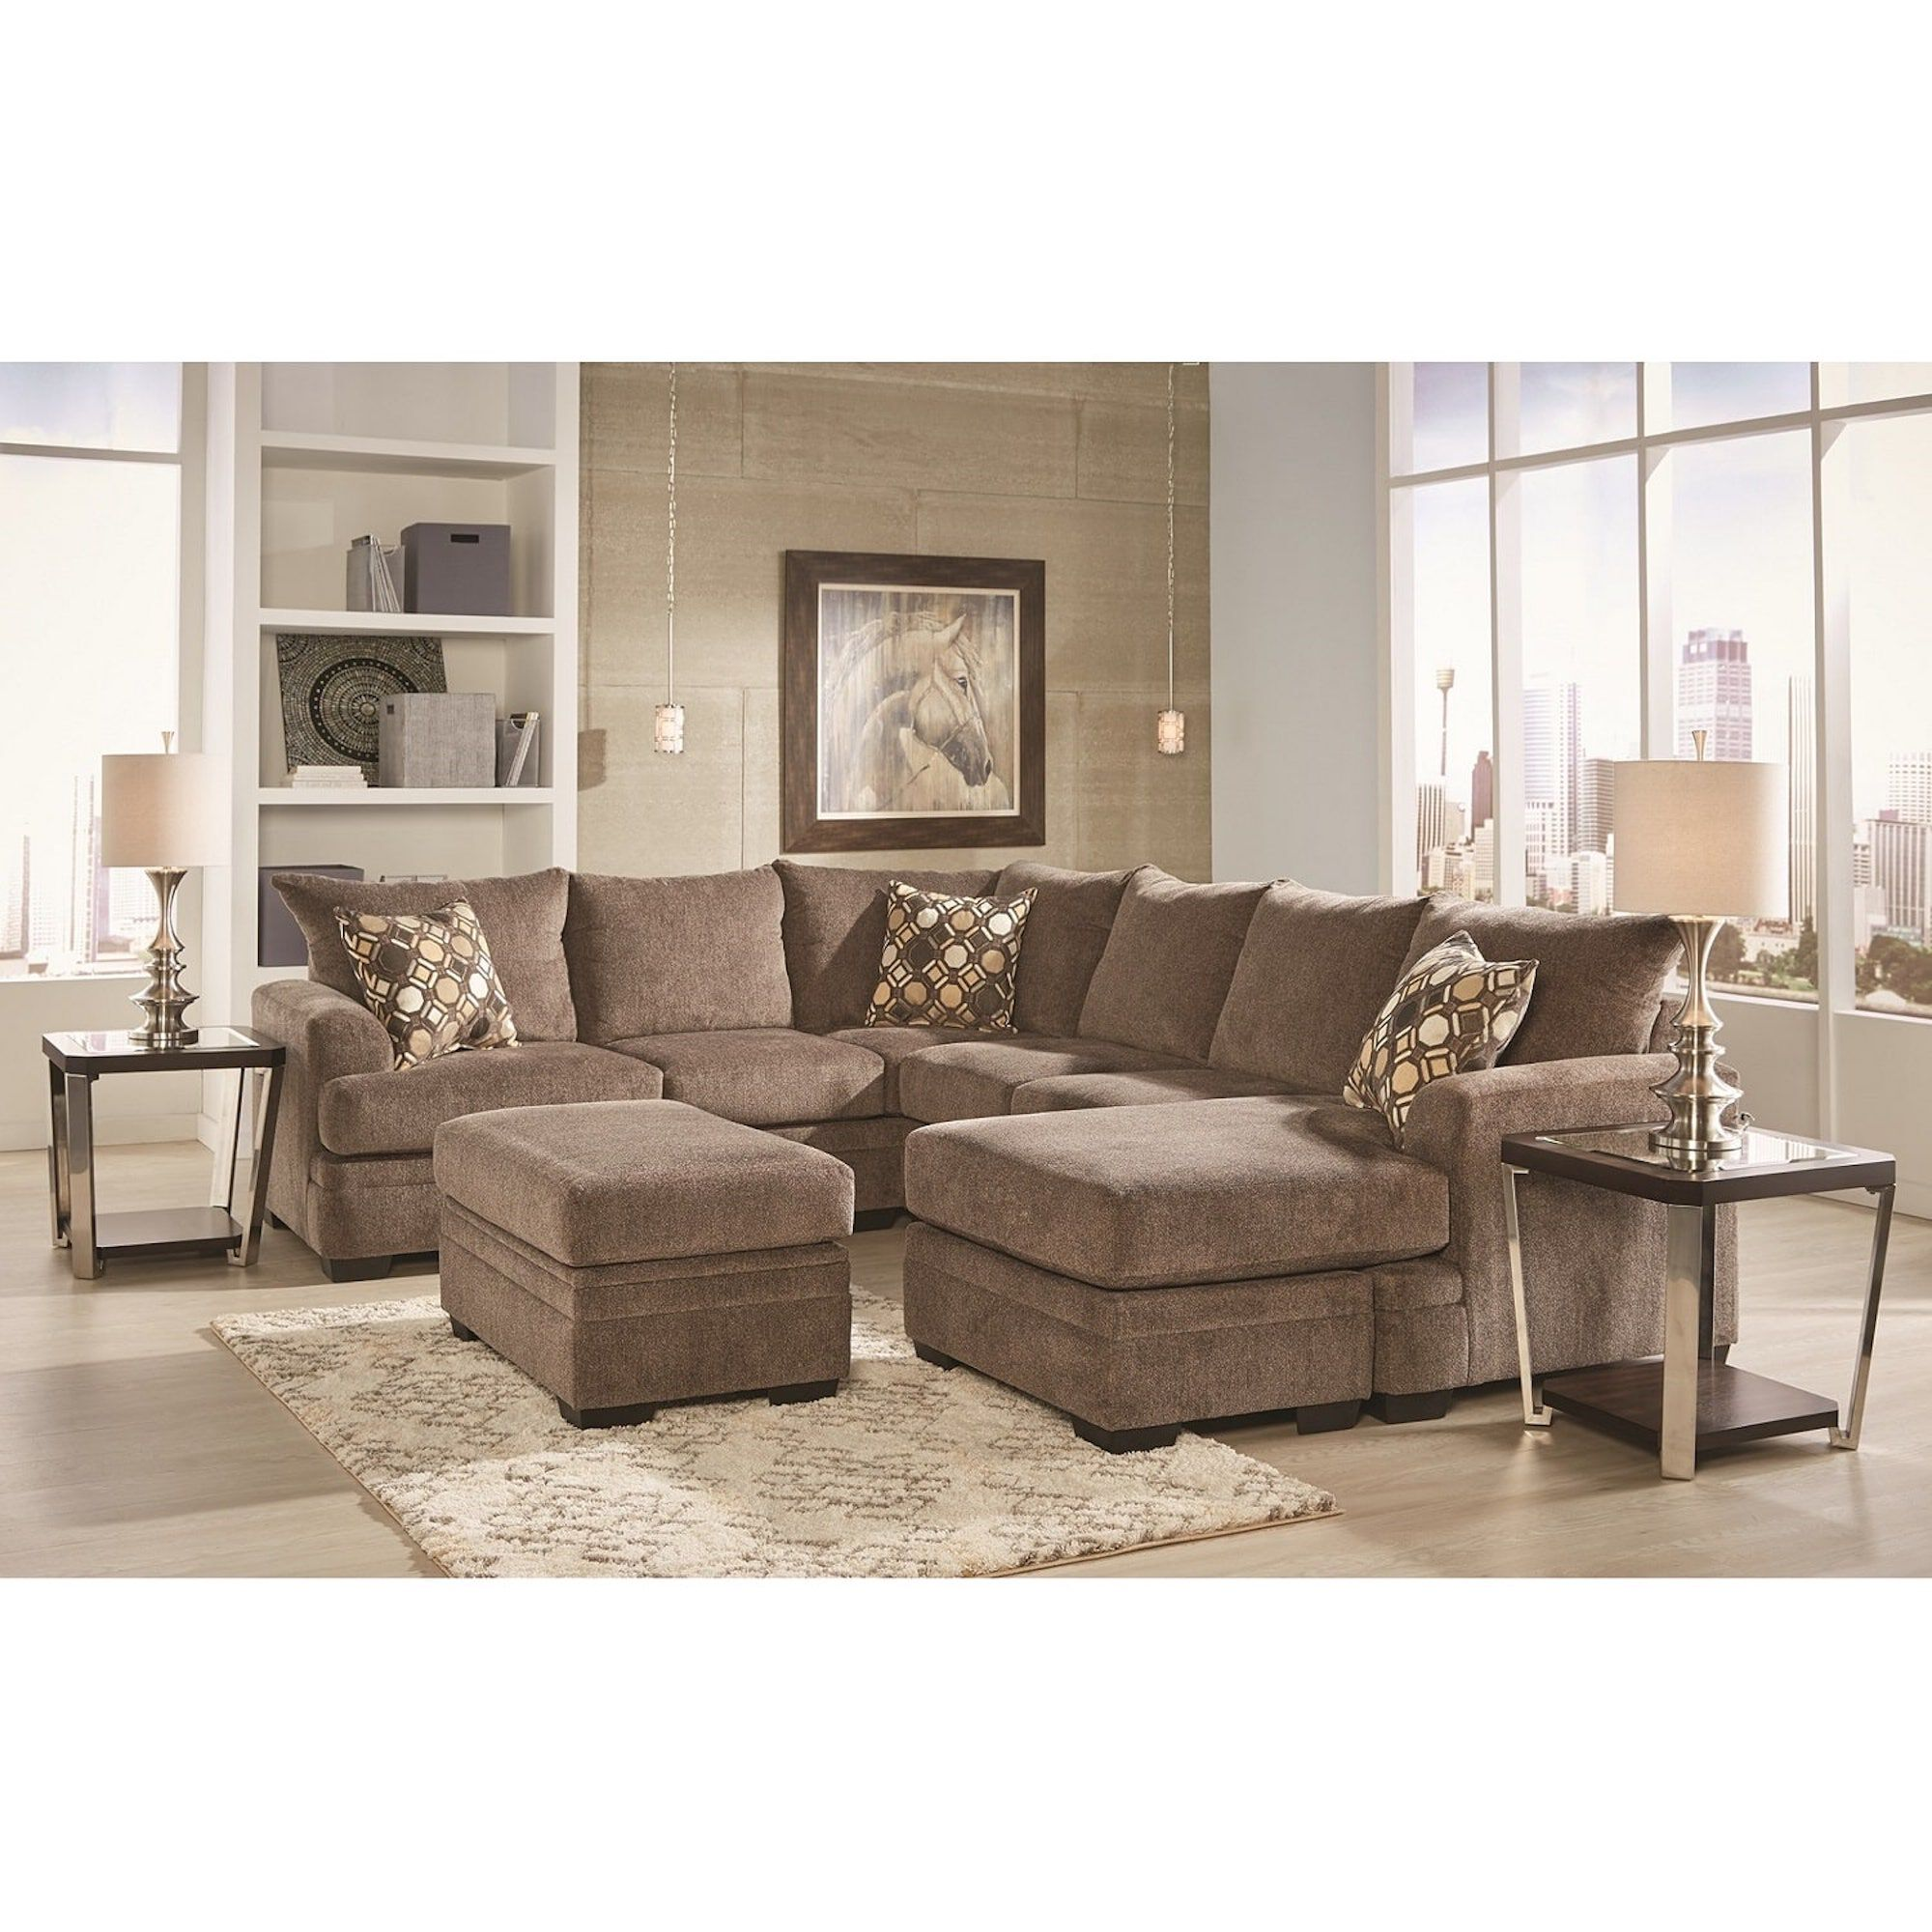 Delightful 3 Piece Kimberly Living Room Collection Sectional